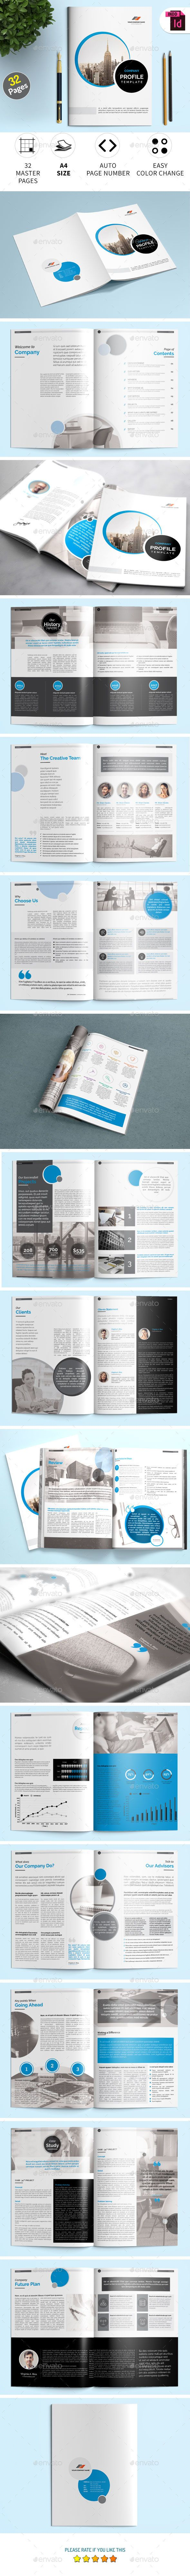 Company Profile InDesign Template | Pinterest | Indesign templates ...